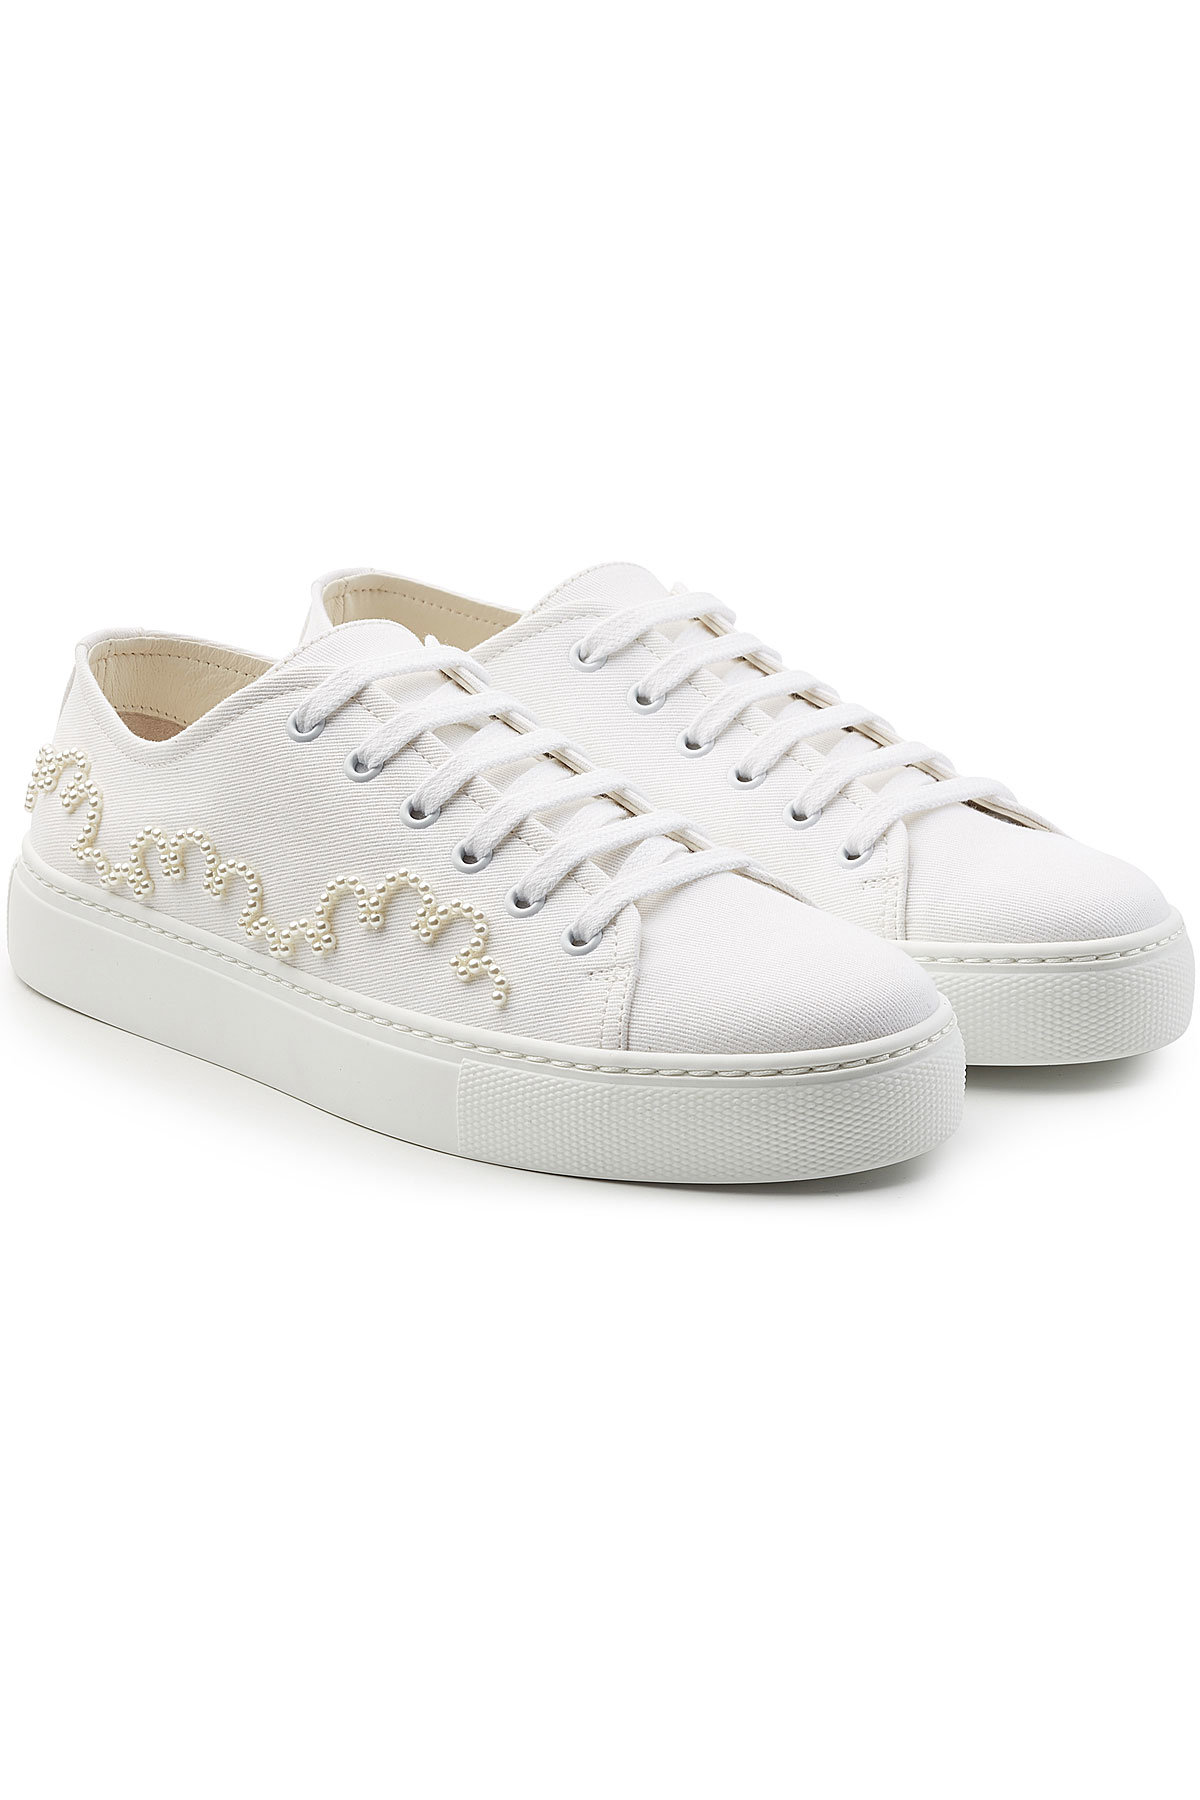 Simone Rocha Velvet High-Top Sneakers Gr. IT 39 3waEcvt7K